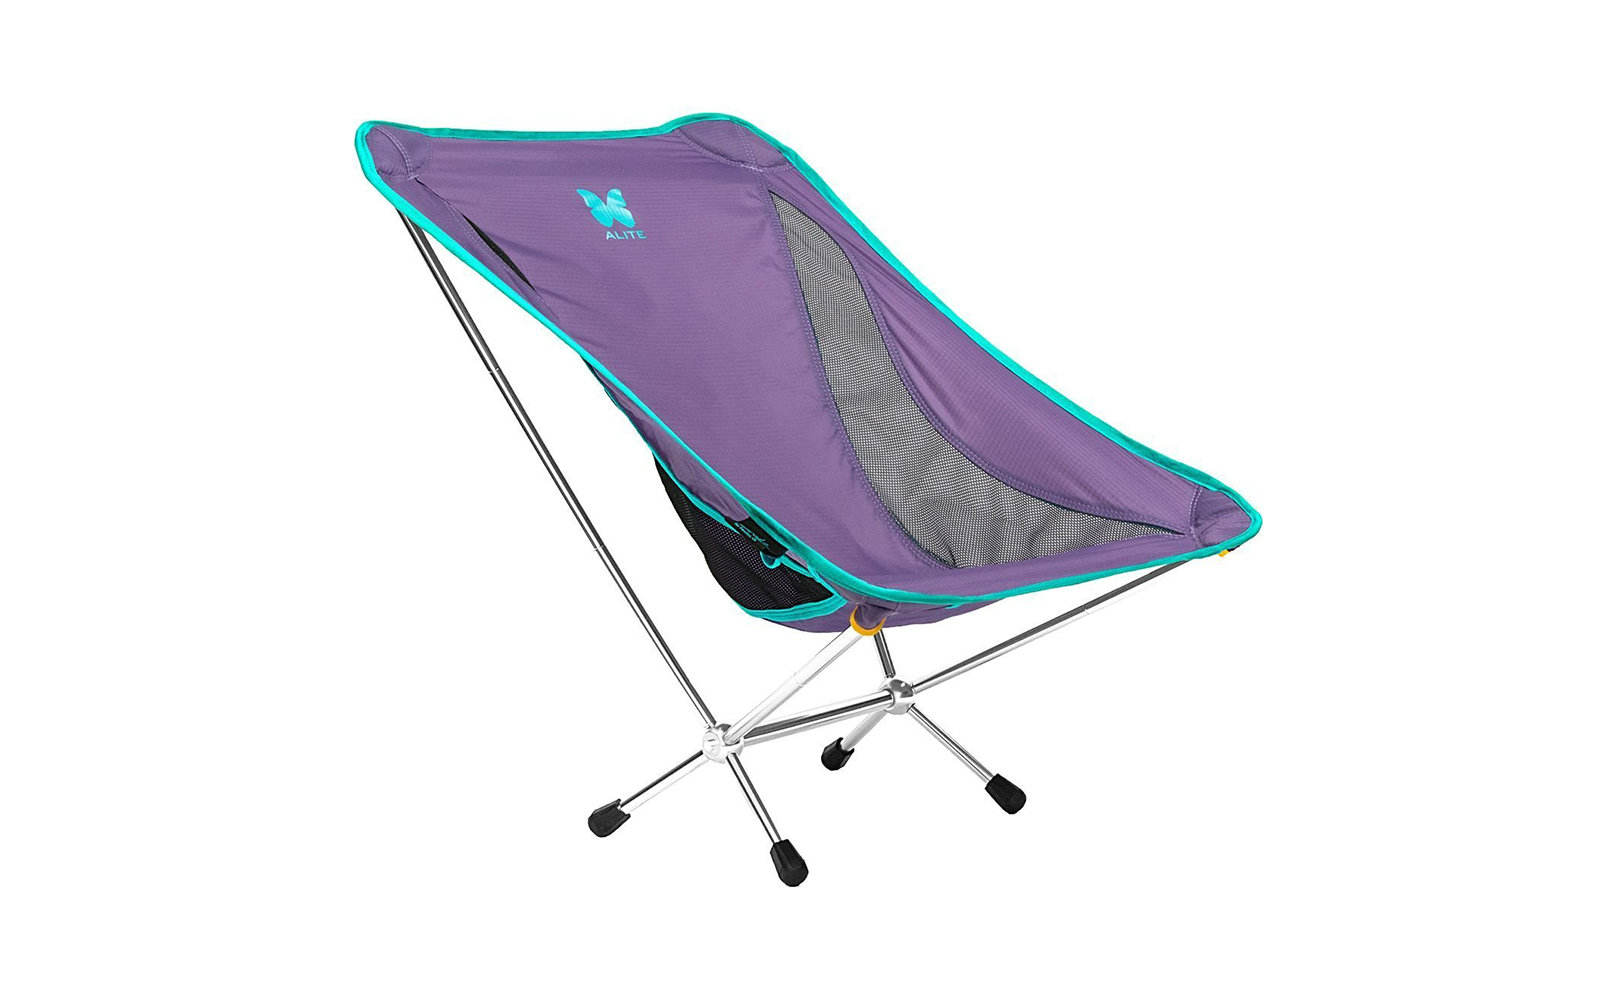 alite mantis chair office arm covers depot the best folding camping chairs travel 43 leisure